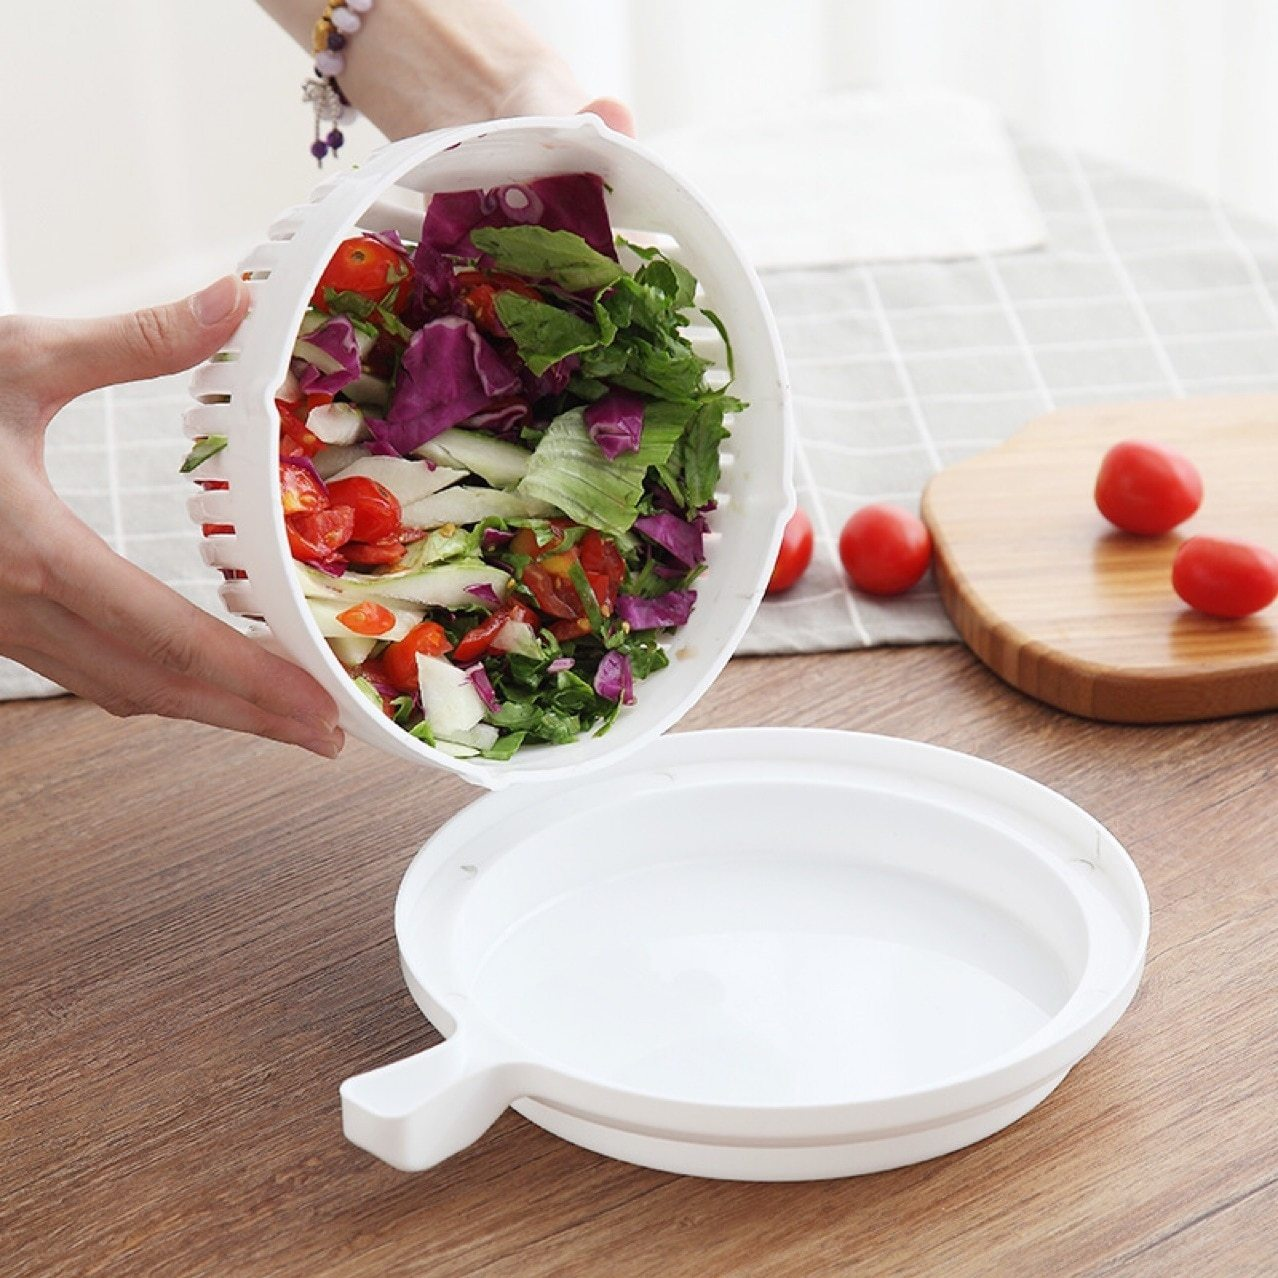 Devoitco® 1 Minute Salad Maker